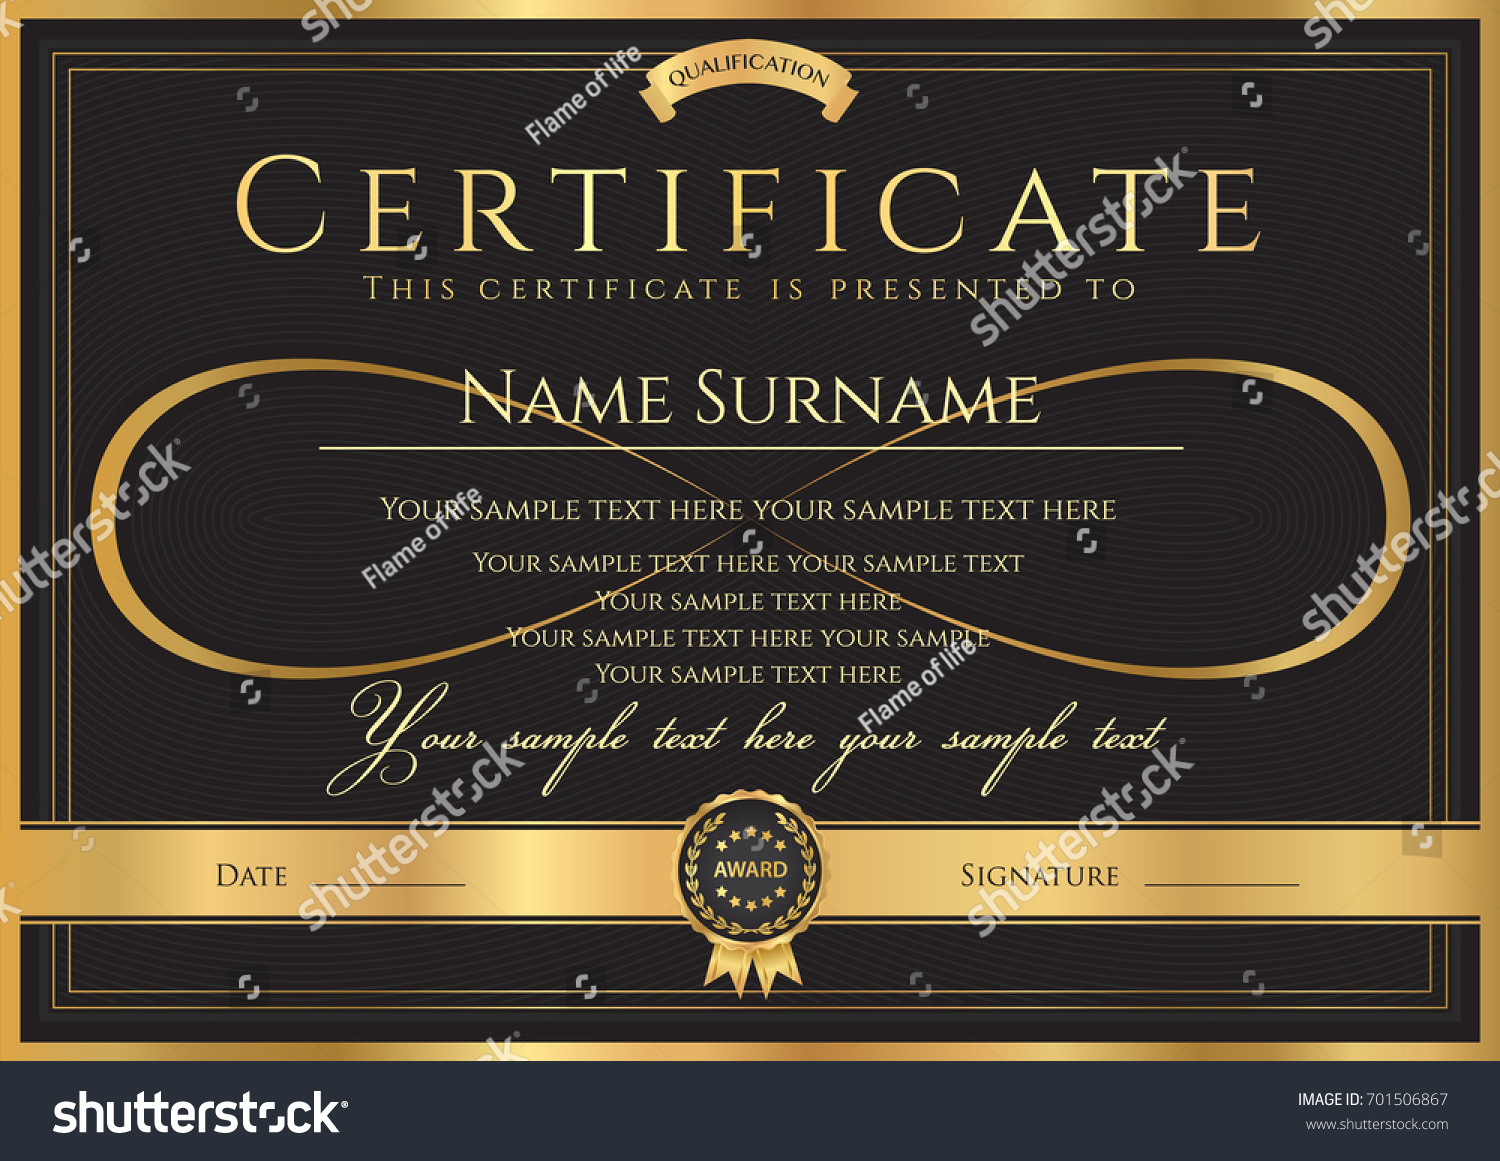 certificate diploma completion abstract design template stock  certificate diploma of completion abstract design template gold frame black background